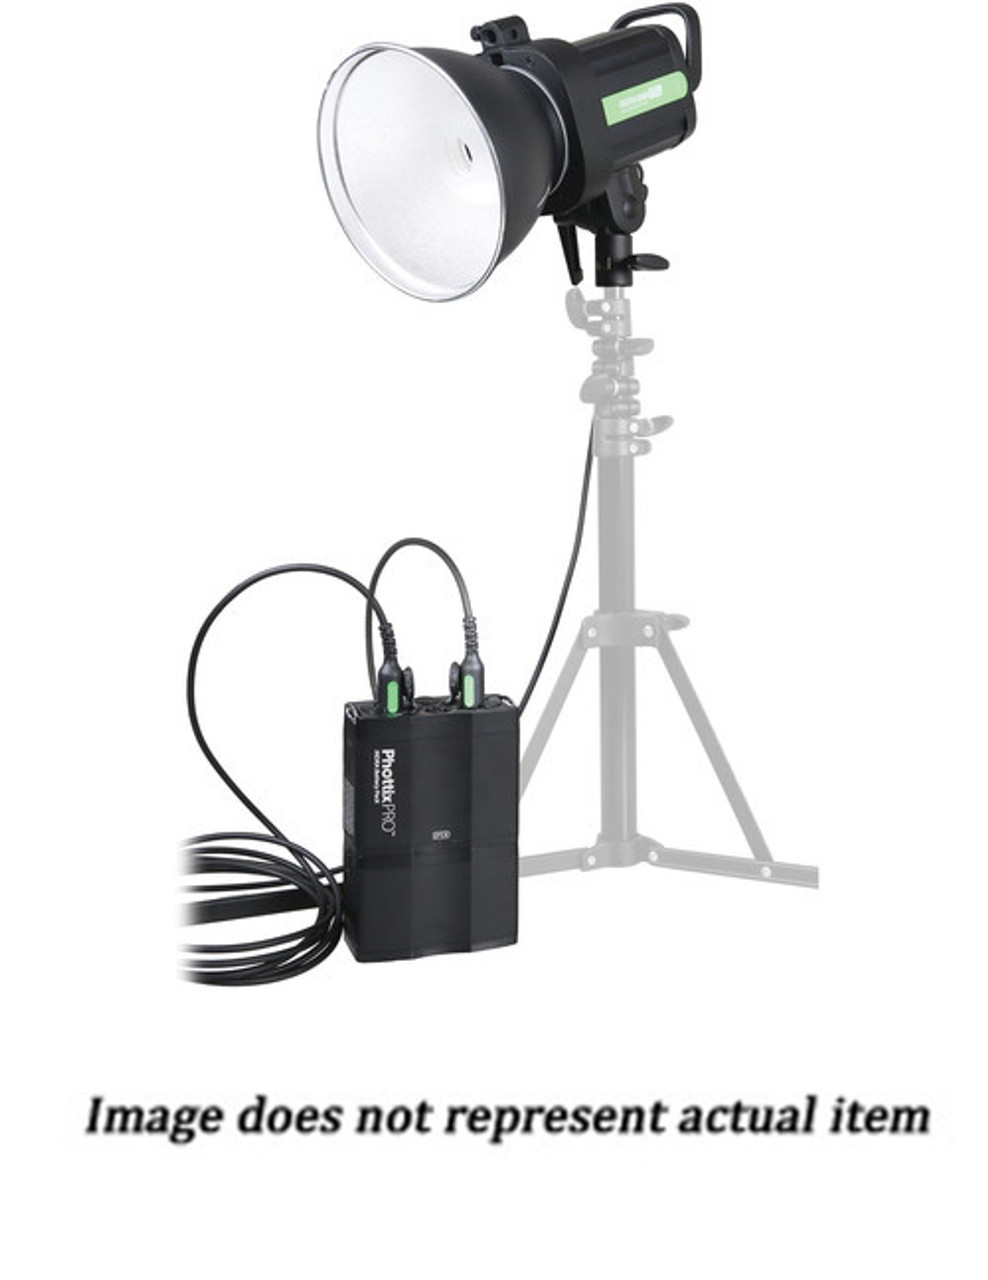 Phottix Indra 500 TTL Battery Powered Studio Light (USED) - S/N 0030002519907H